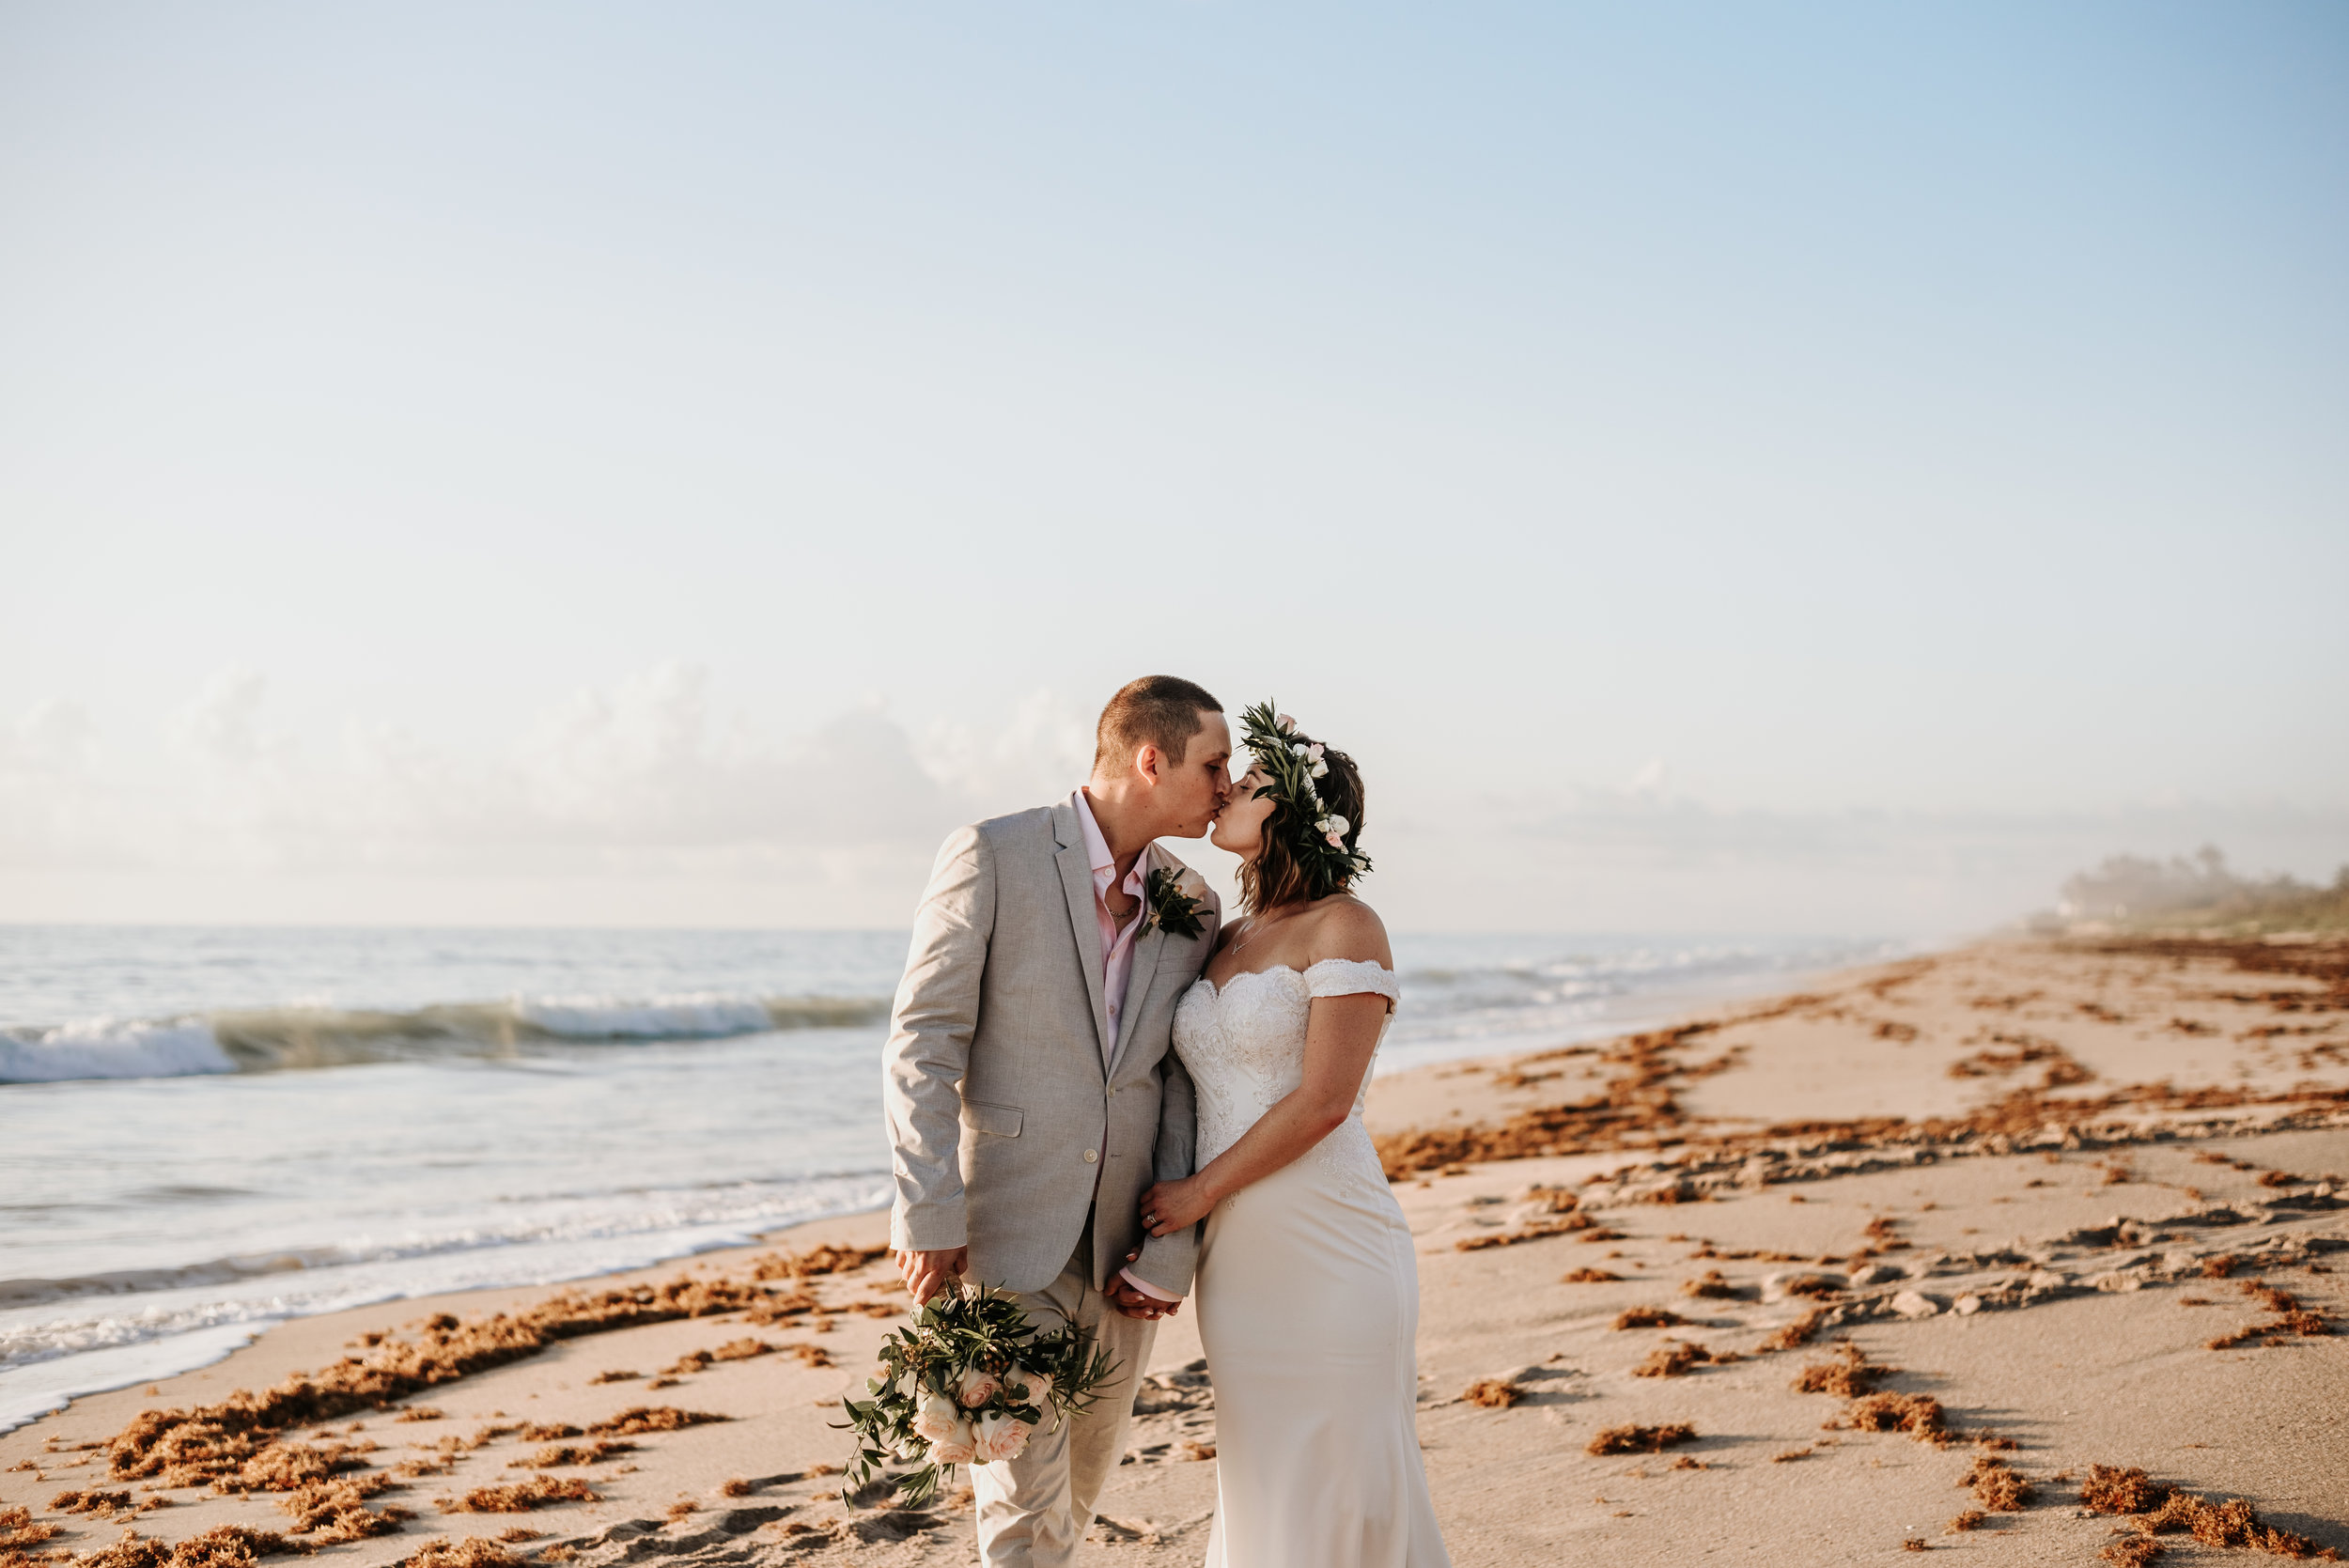 Crystal-Nick-Wedding-Vero-Beach-Florida-Treasure-Shores-Beach-Photography-by-V-3012.jpg